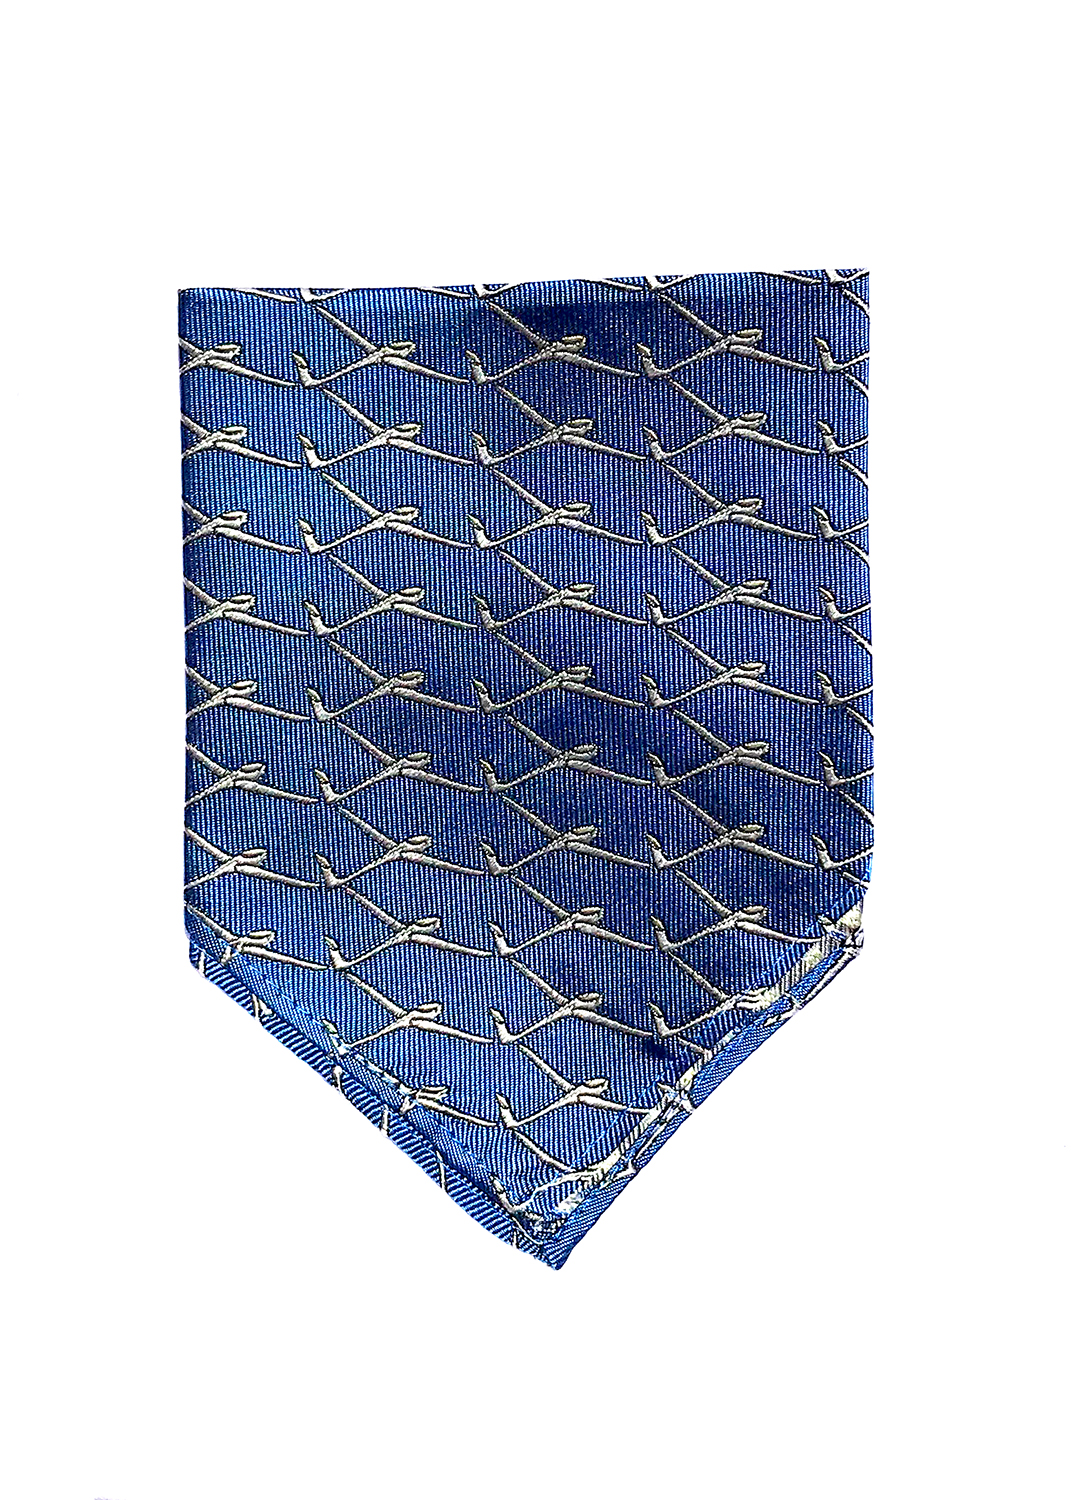 Glider pocket square in true blue